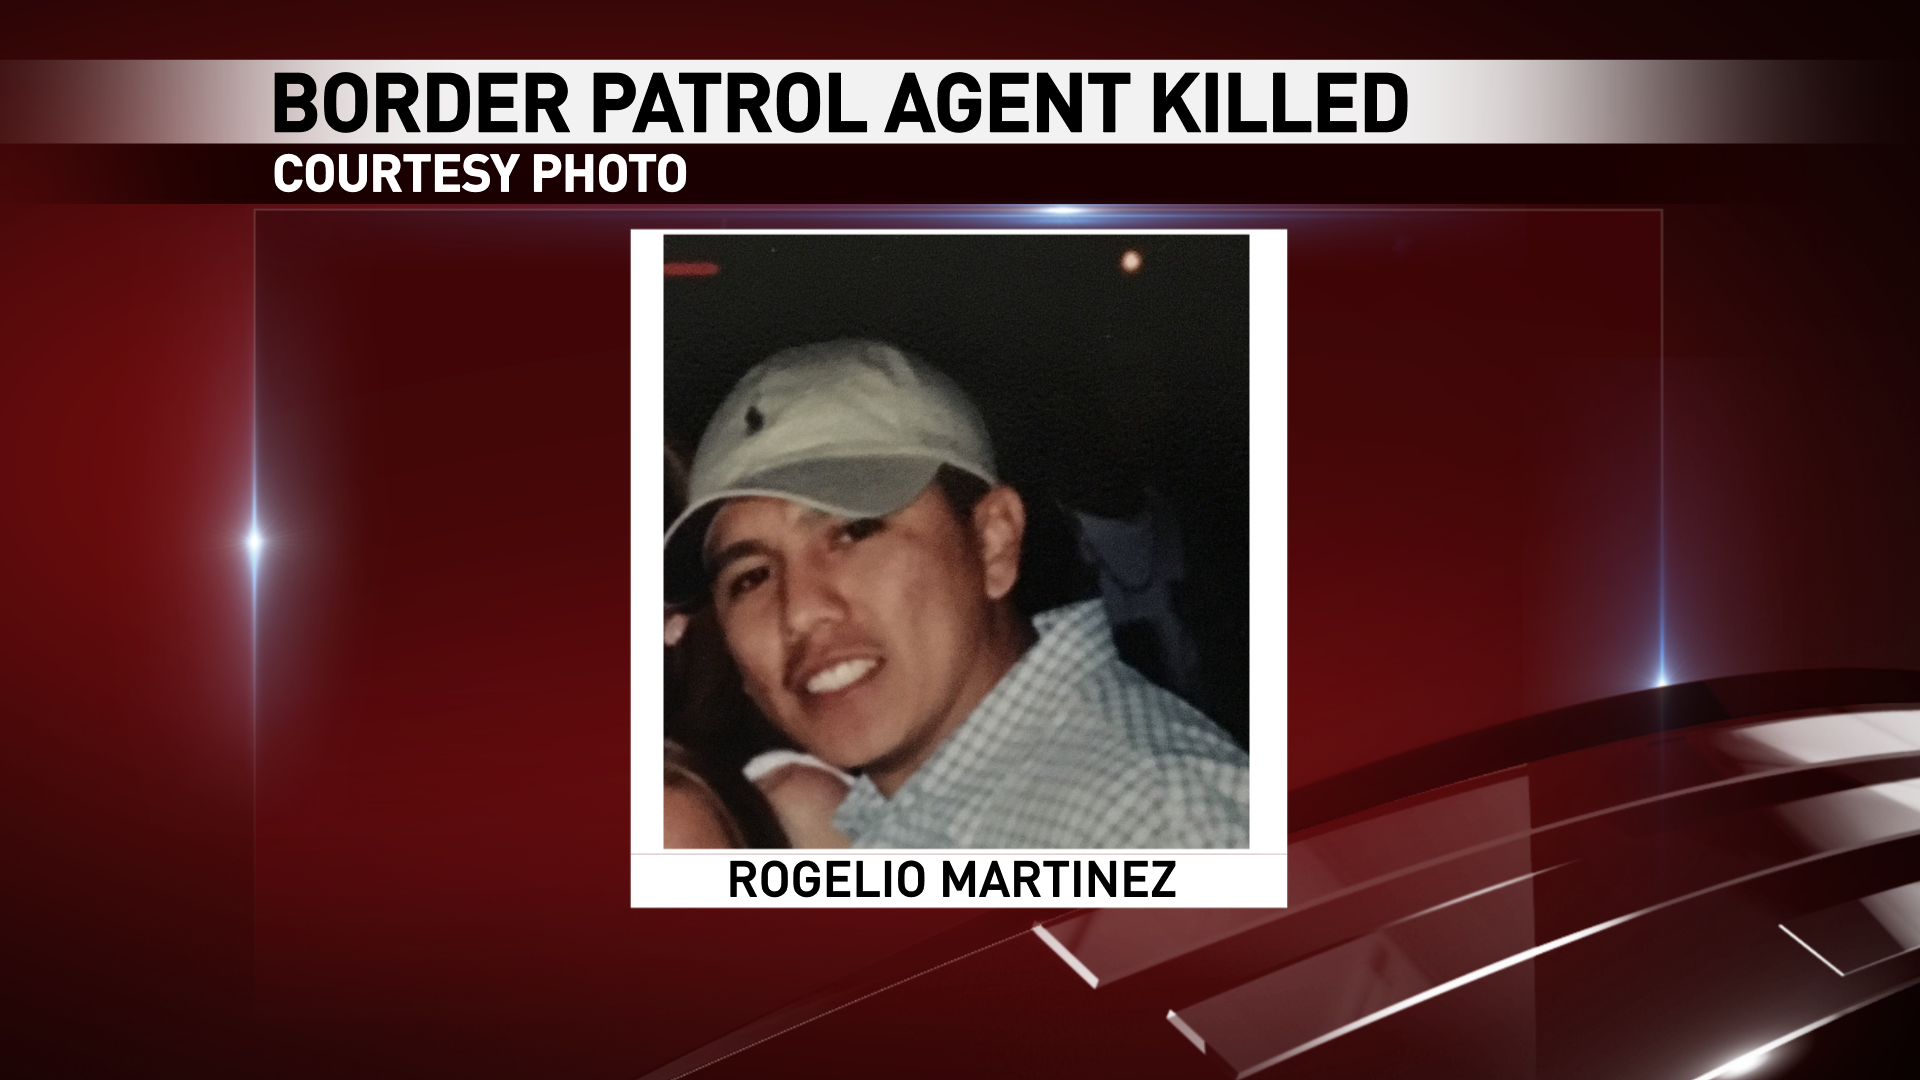 Rogelio Martinez of El Paso was killed in an incident while on duty near Van Horn, Texas Sunday, Nov. 19, 2017.{ }(Courtesy photo)